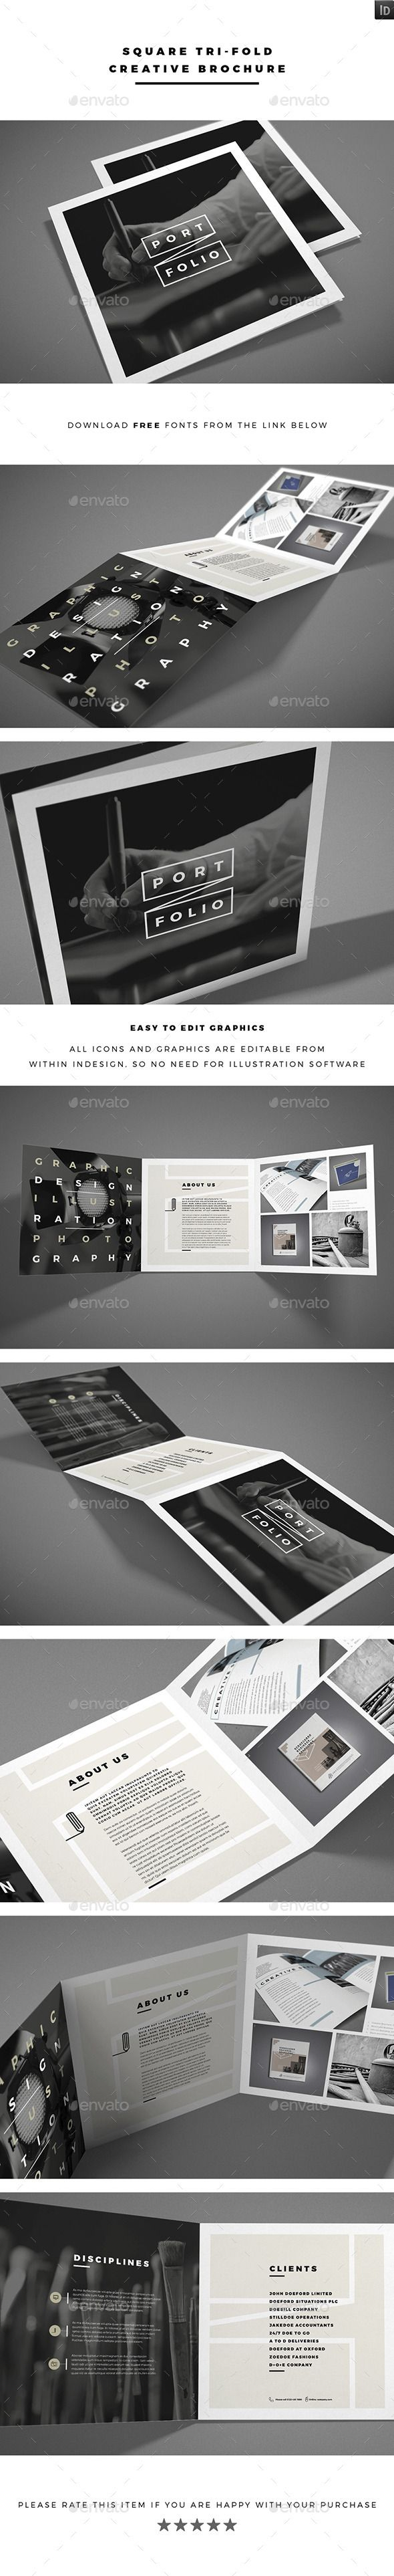 Square Tri-fold Creative Brochure Template #printdesign #brochure Download: http://graphicriver.net/item/square-trifold-creative-brochure/12068053?ref=ksioks